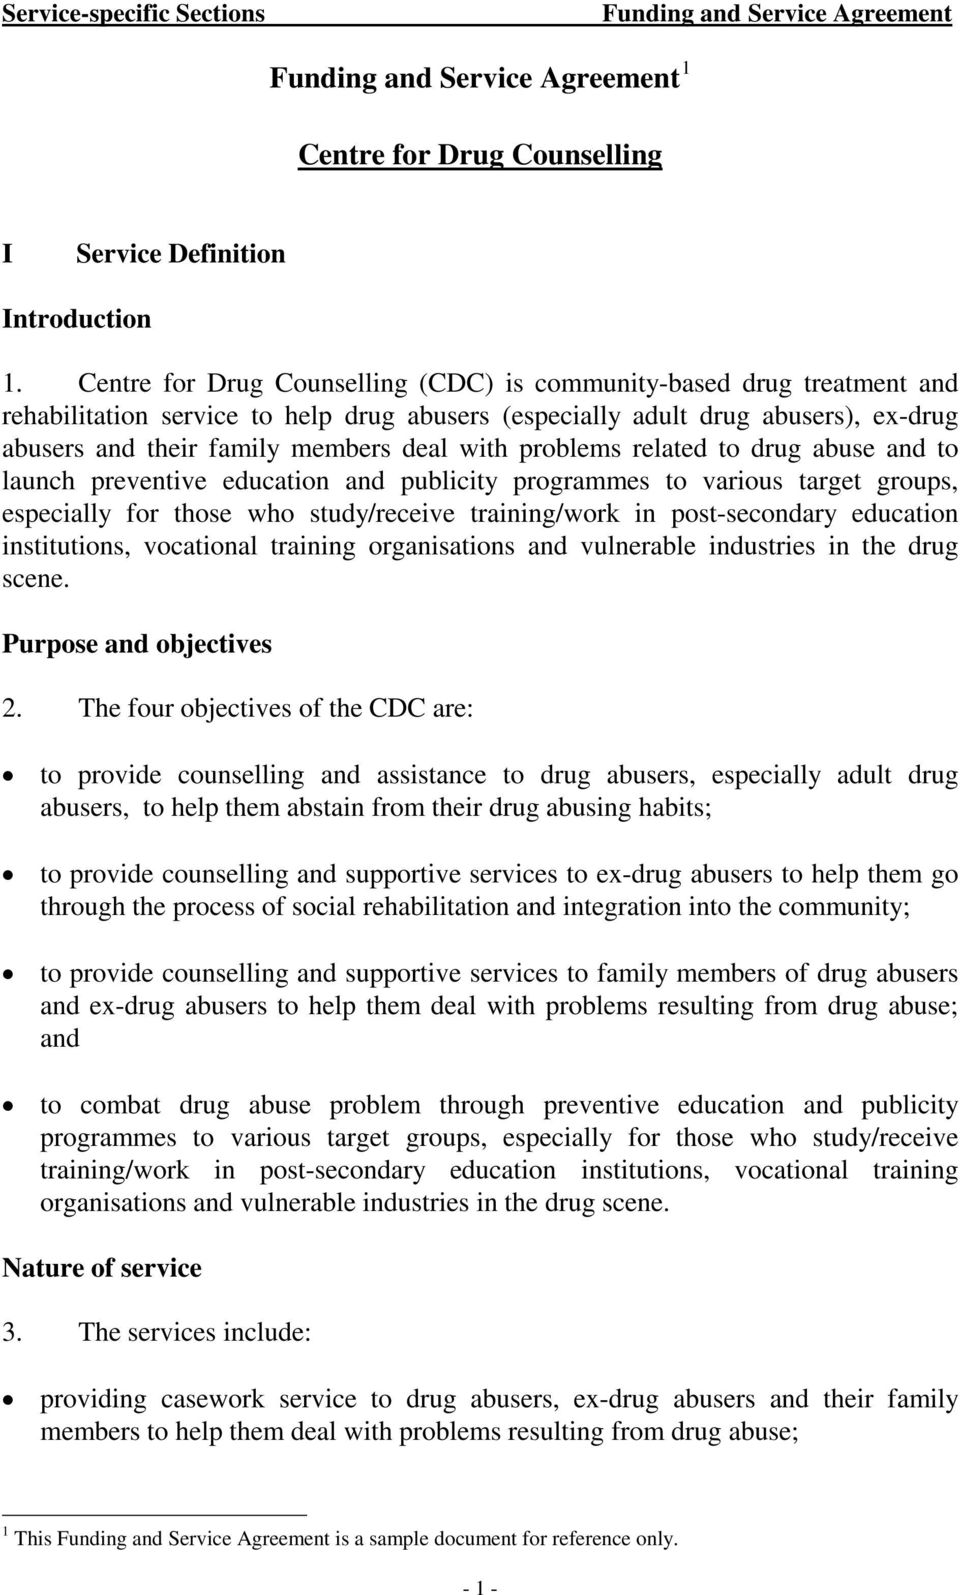 problems related to drug abuse and to launch preventive education and publicity programmes to various target groups, especially for those who study/receive training/work in post-secondary education